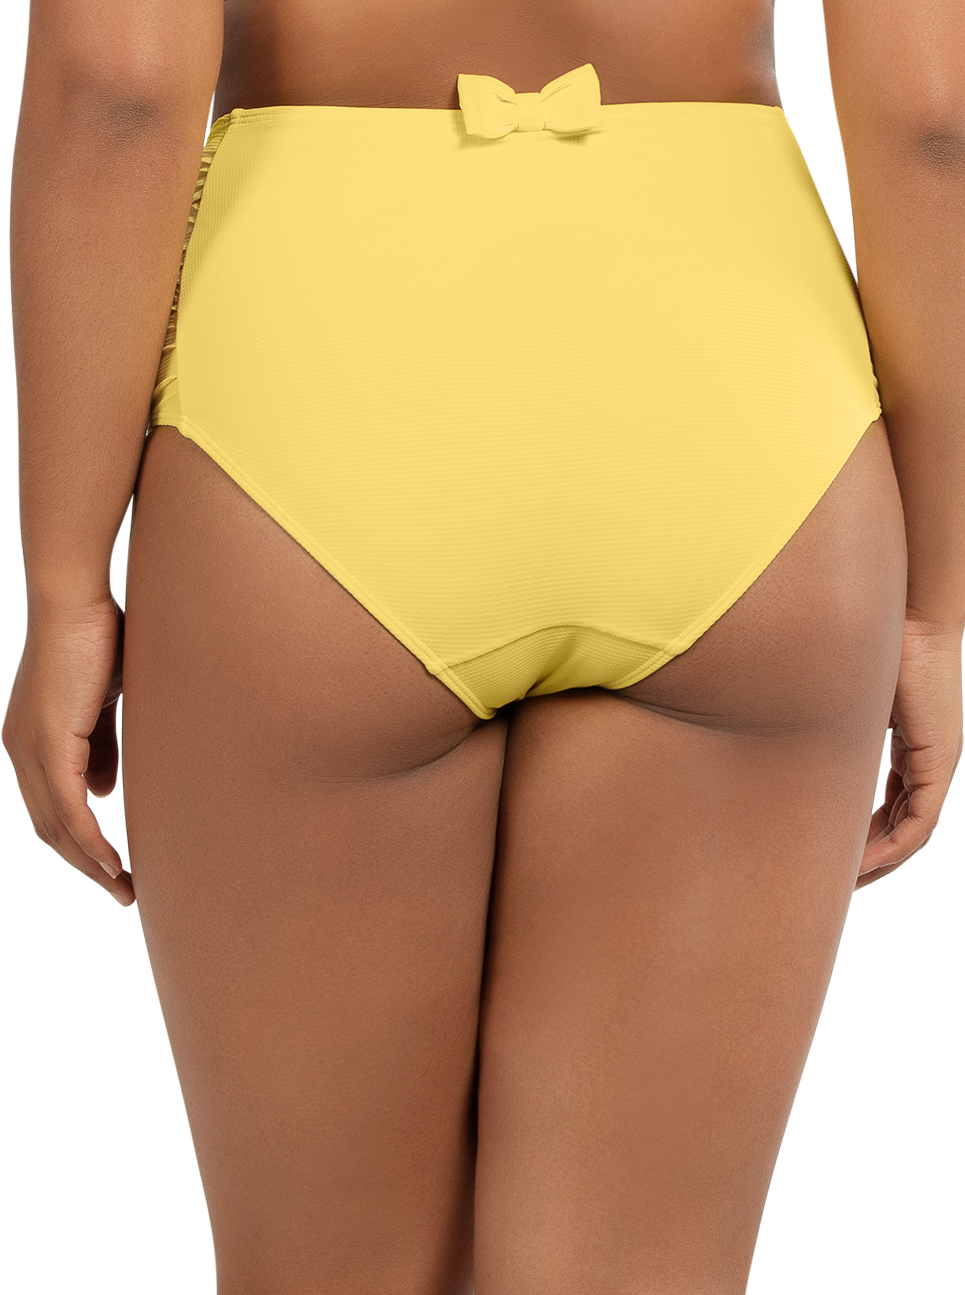 PARFAIT Vivien HighwaistedBottomS8165 LemonDrop Back - Vivien Highwaisted Bottom Lemon Drop S8165